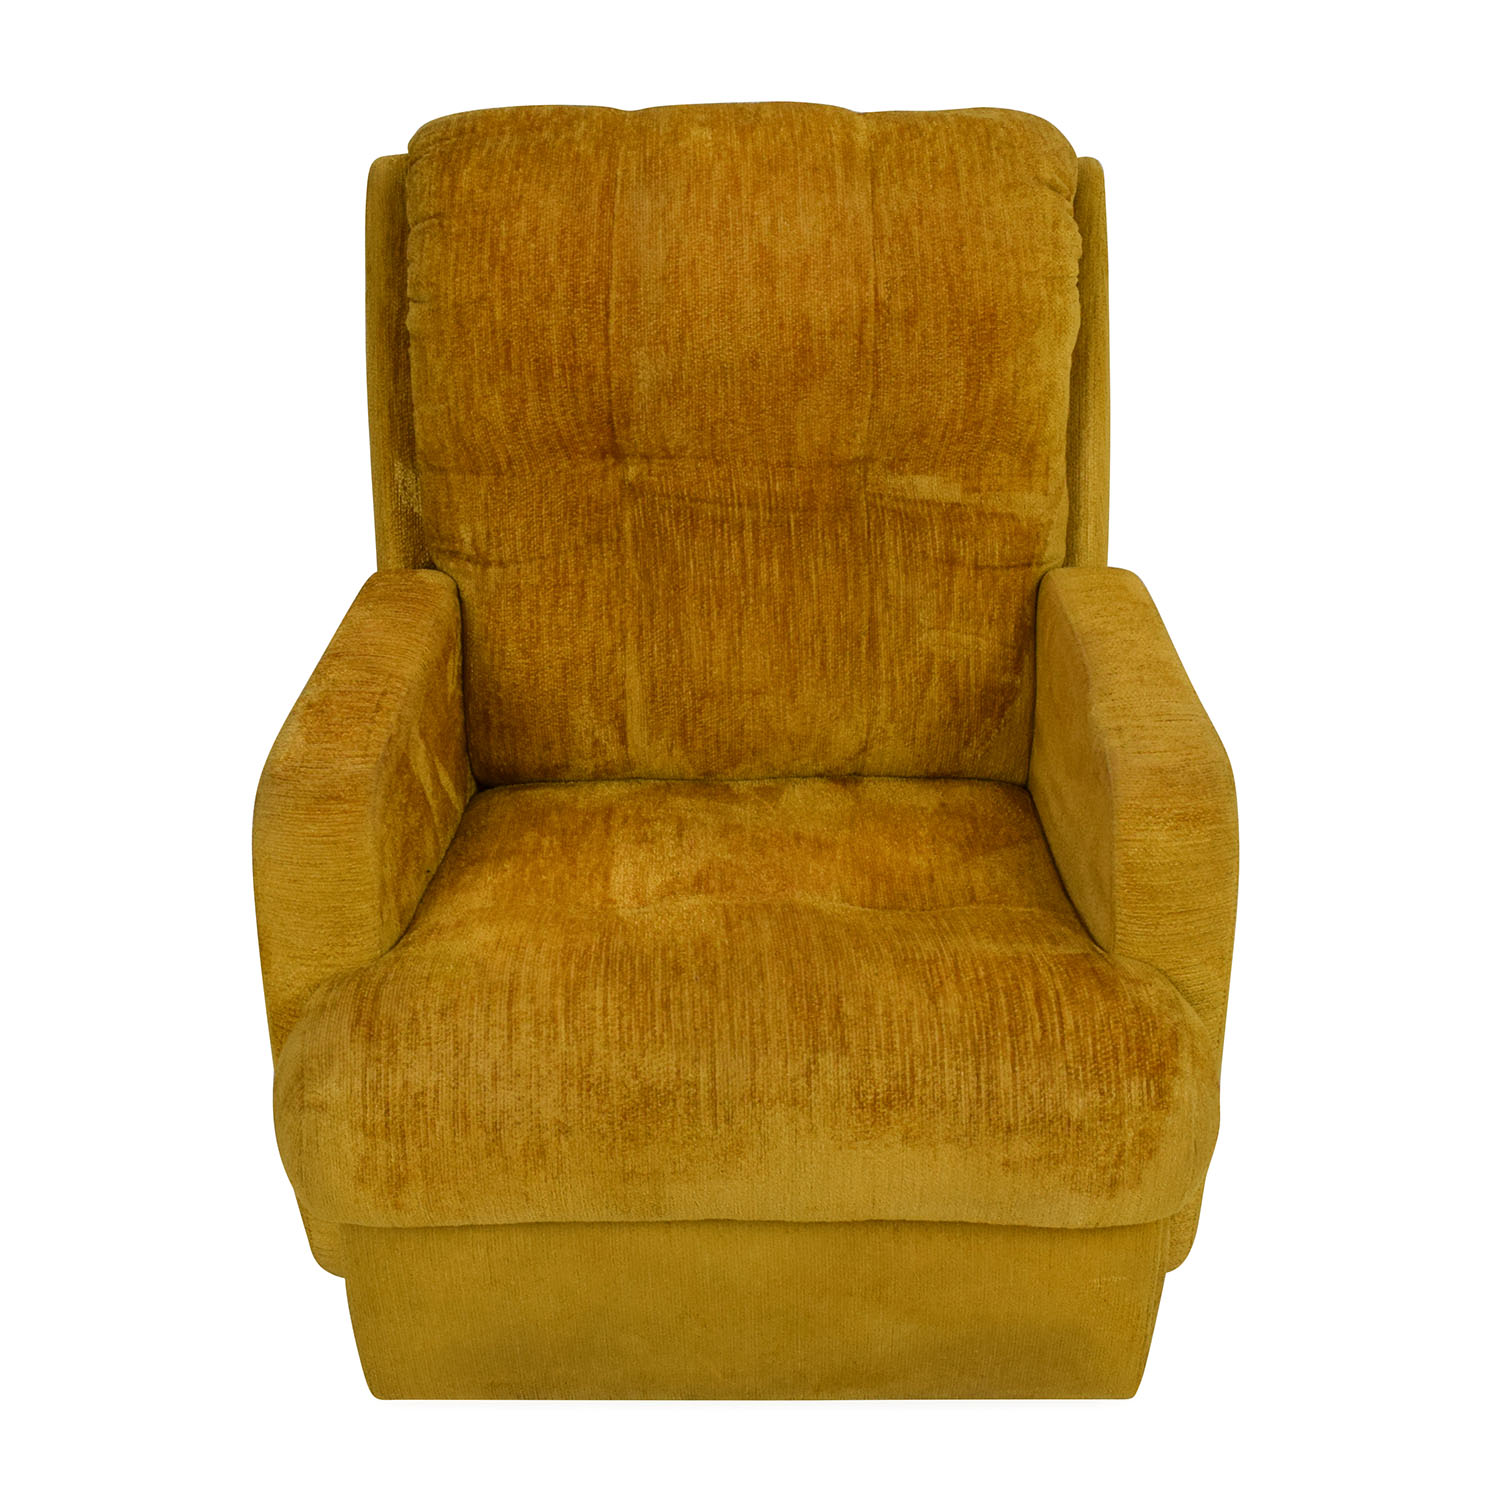 Unknown Brand Yellow Recliner Chair Sofas